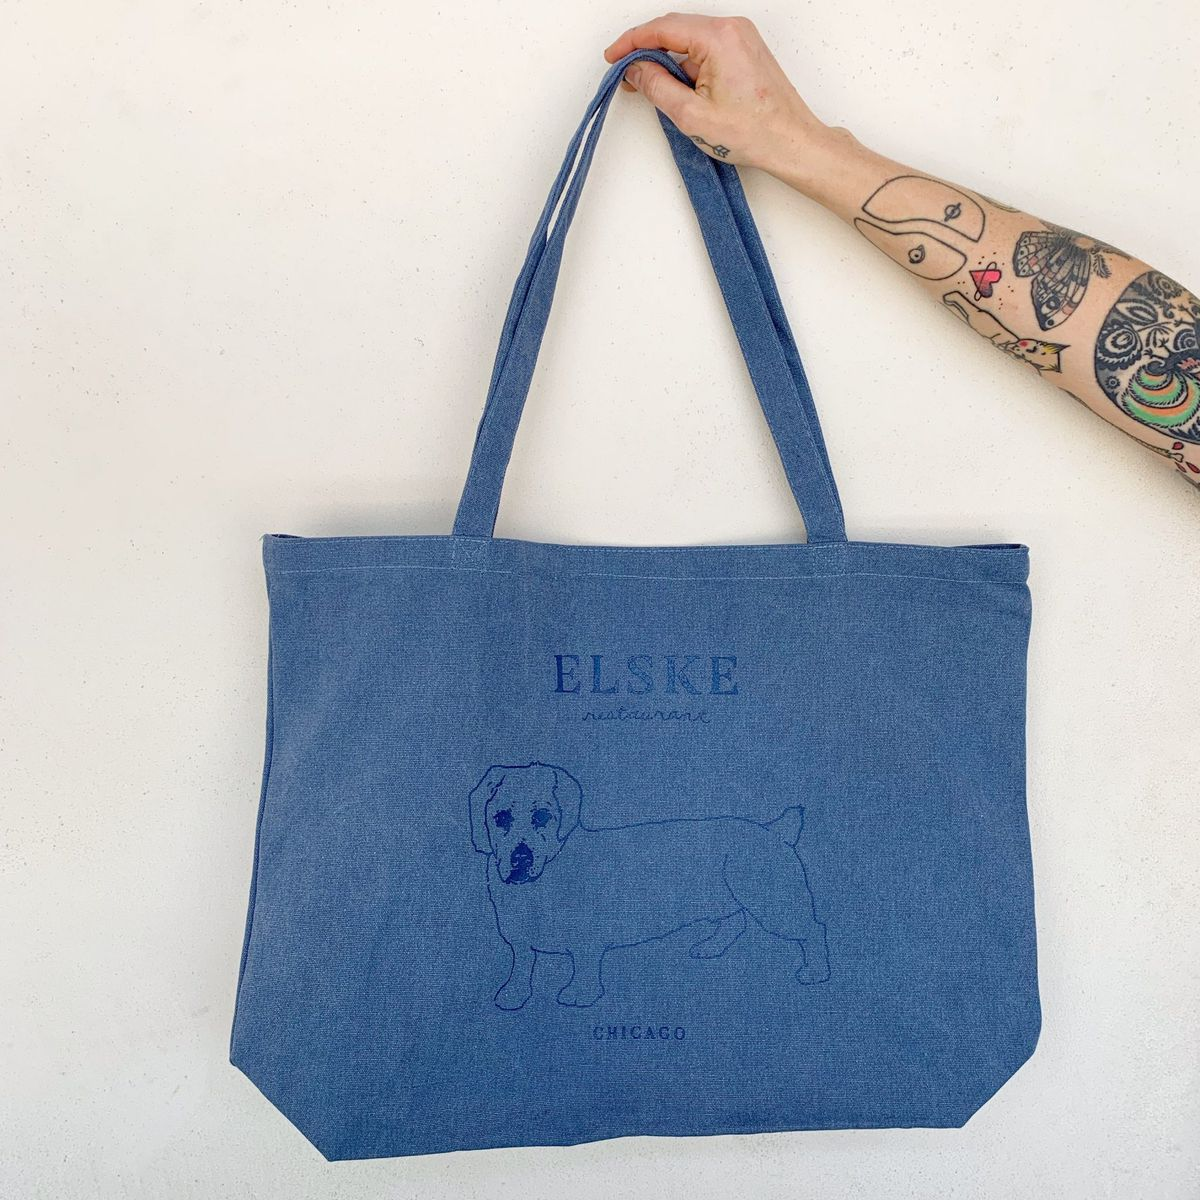 A blue bag with a dog printed on it.